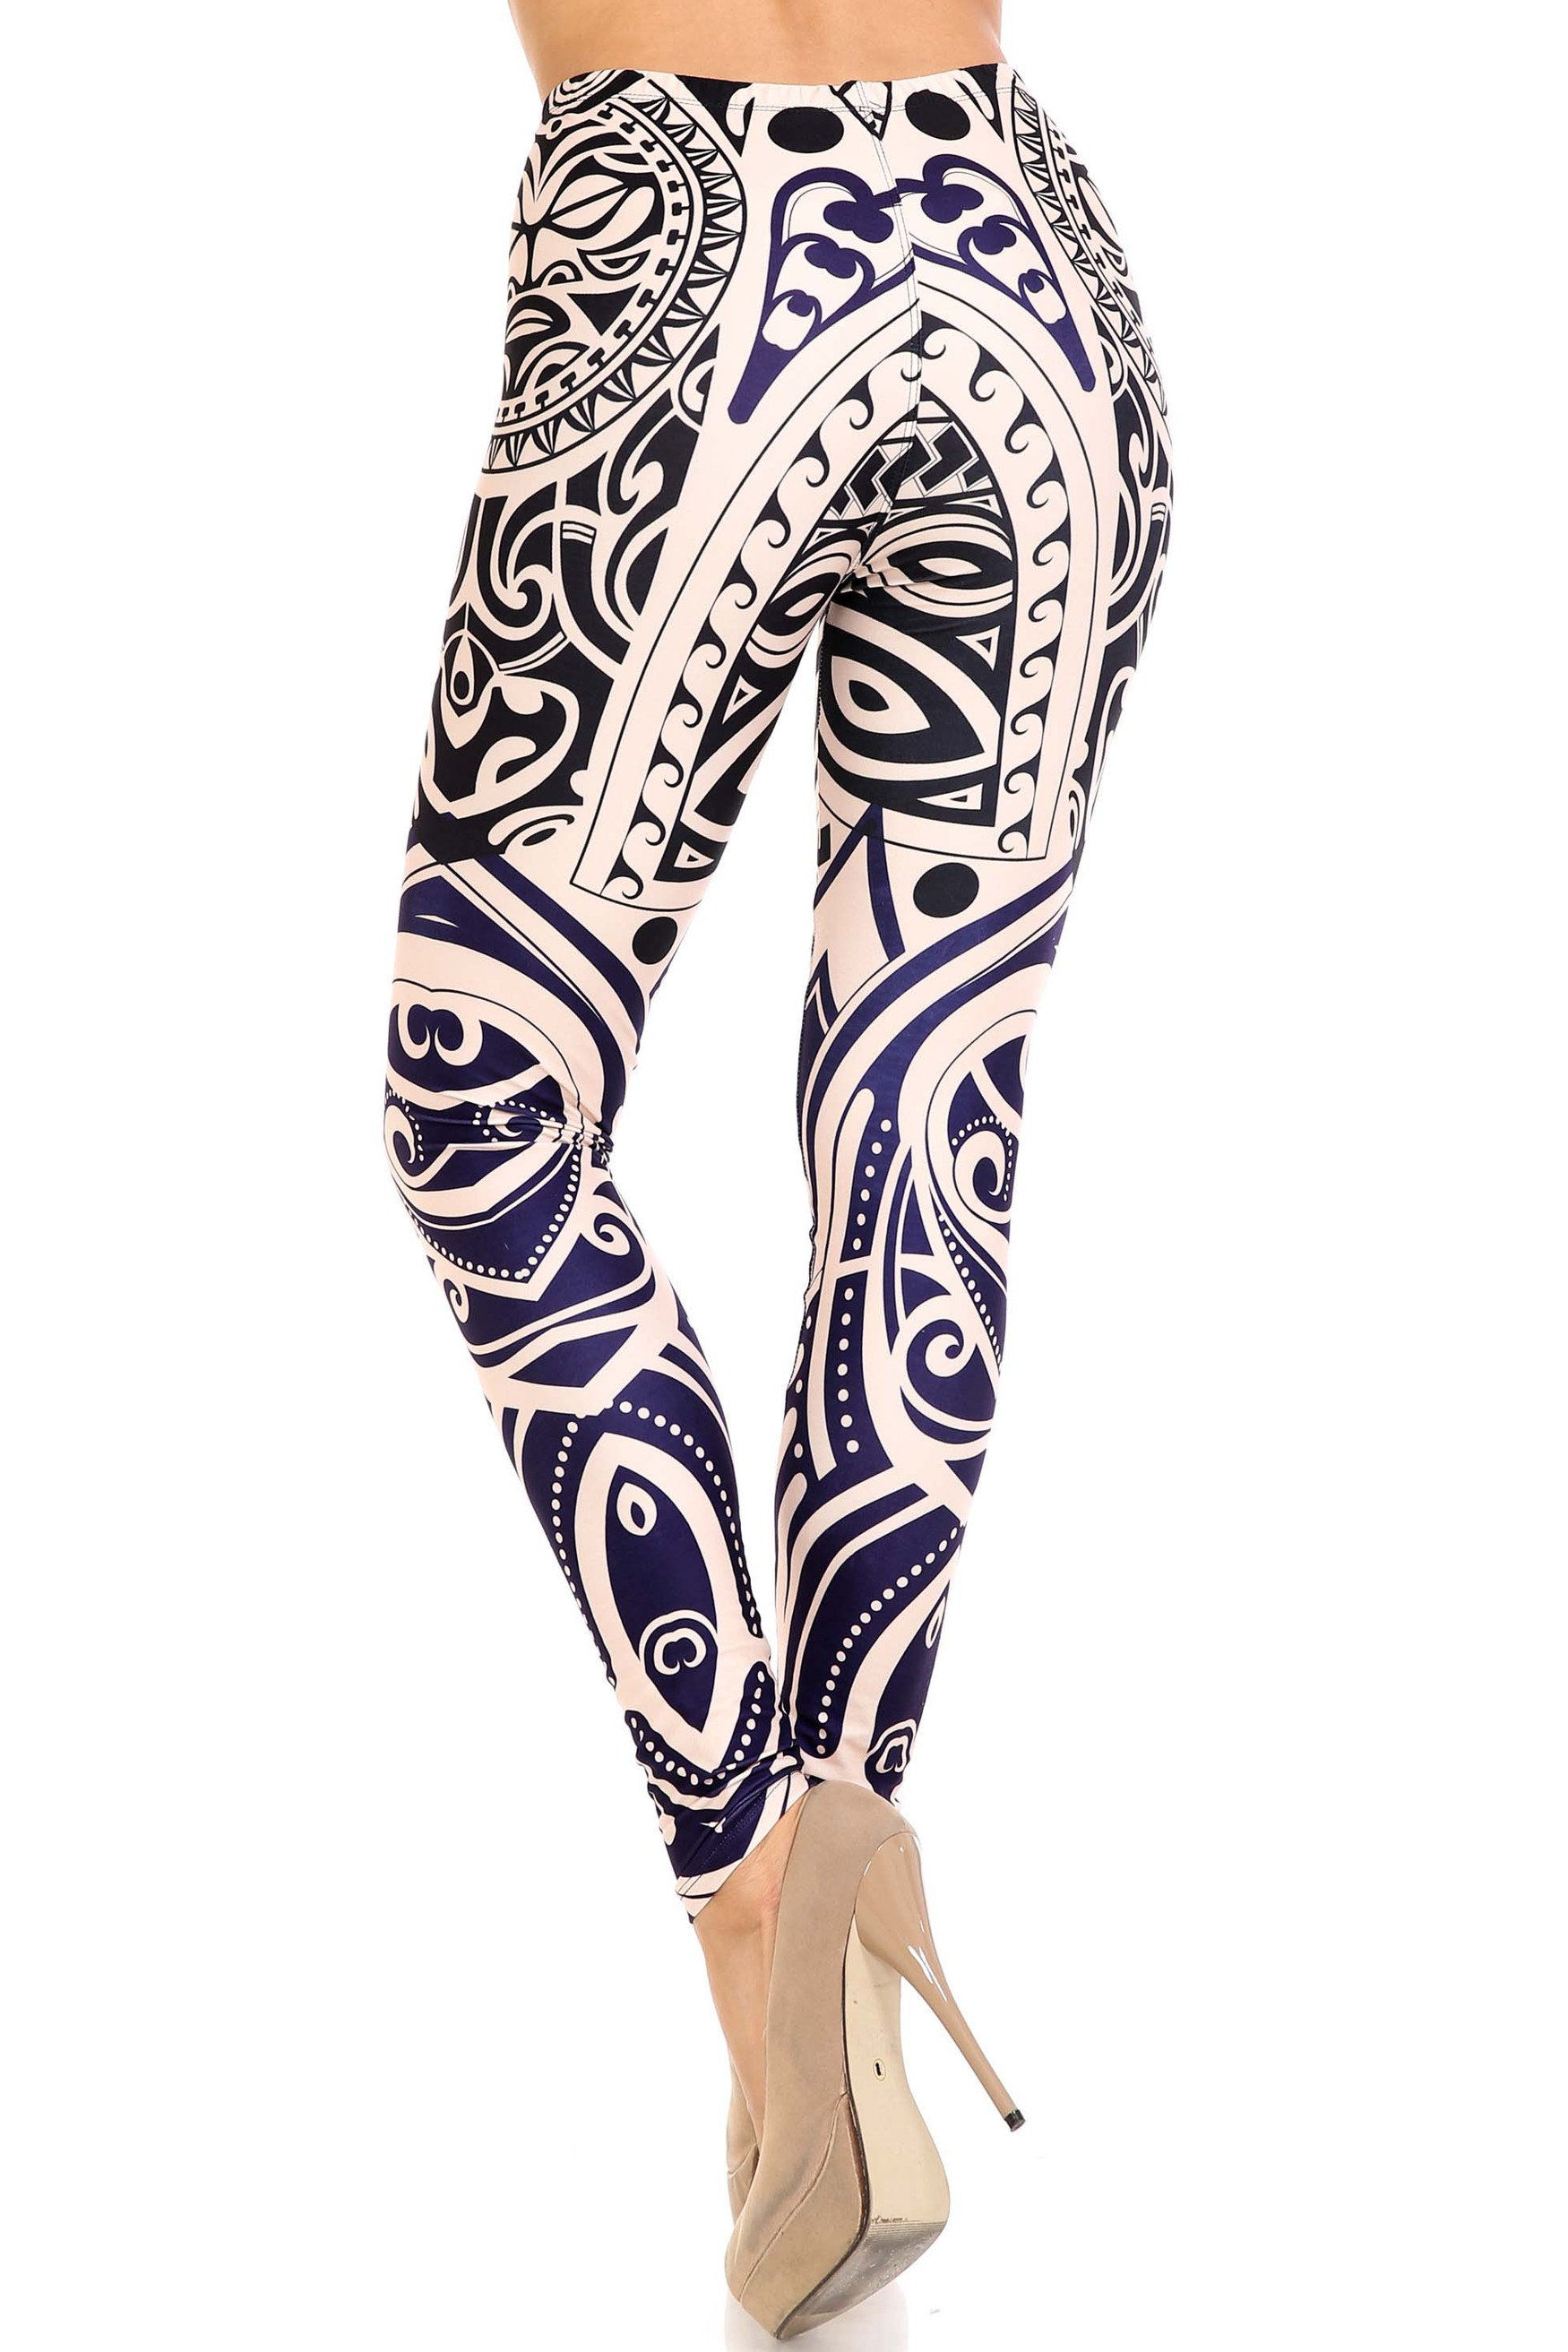 45 degree back view of Creamy Soft Valhalla Leggings - USA Fashion™ with a body-fitted flattering look.